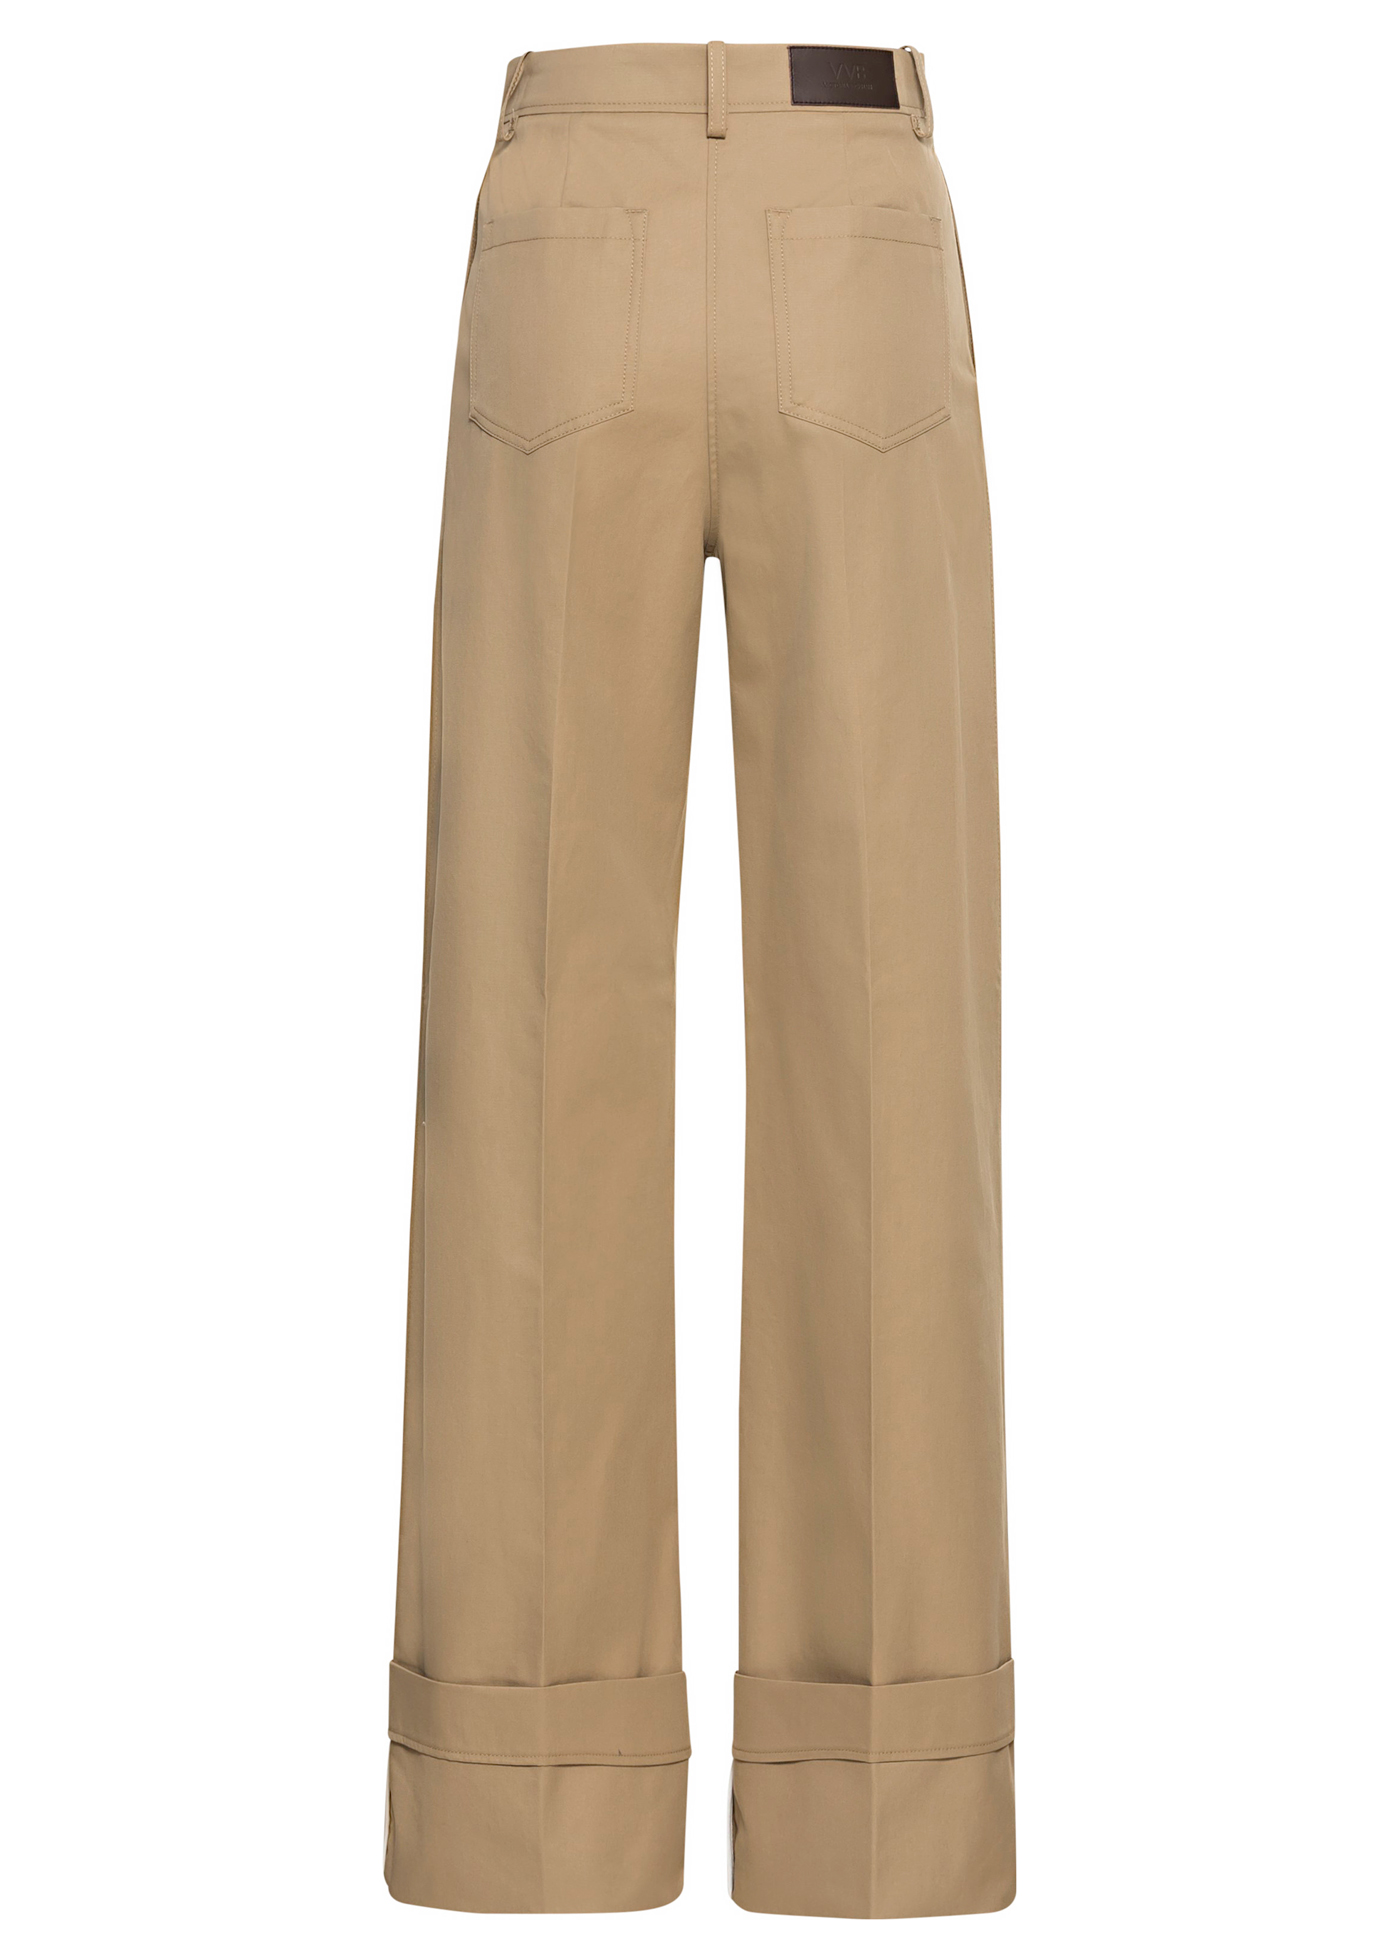 FLARED CHINO TROUSER image number 1